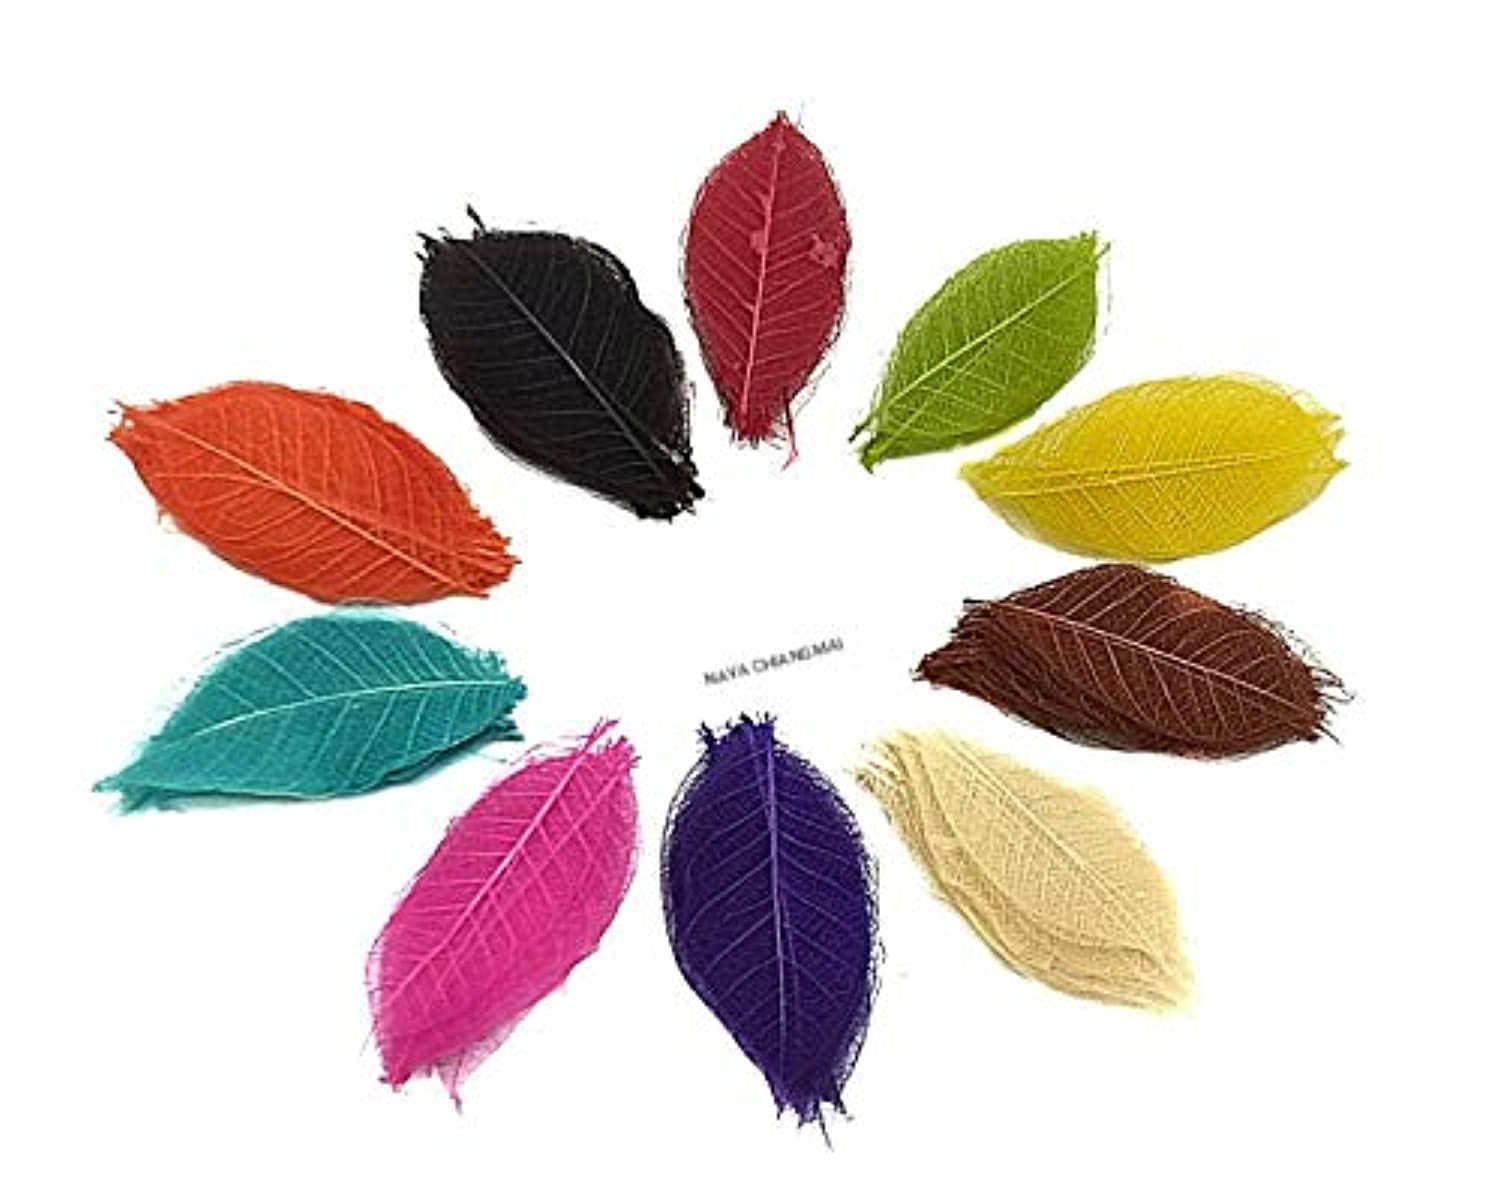 NAVA CHIANGMAI Rubber Tree Leaves - Pack of 100 Skeleton Leaves Decorative DIY Craft, Artificial Leaves Craft Card Scrapbook DIY Handmade Embellishment Decoration Art (Mixed Color)